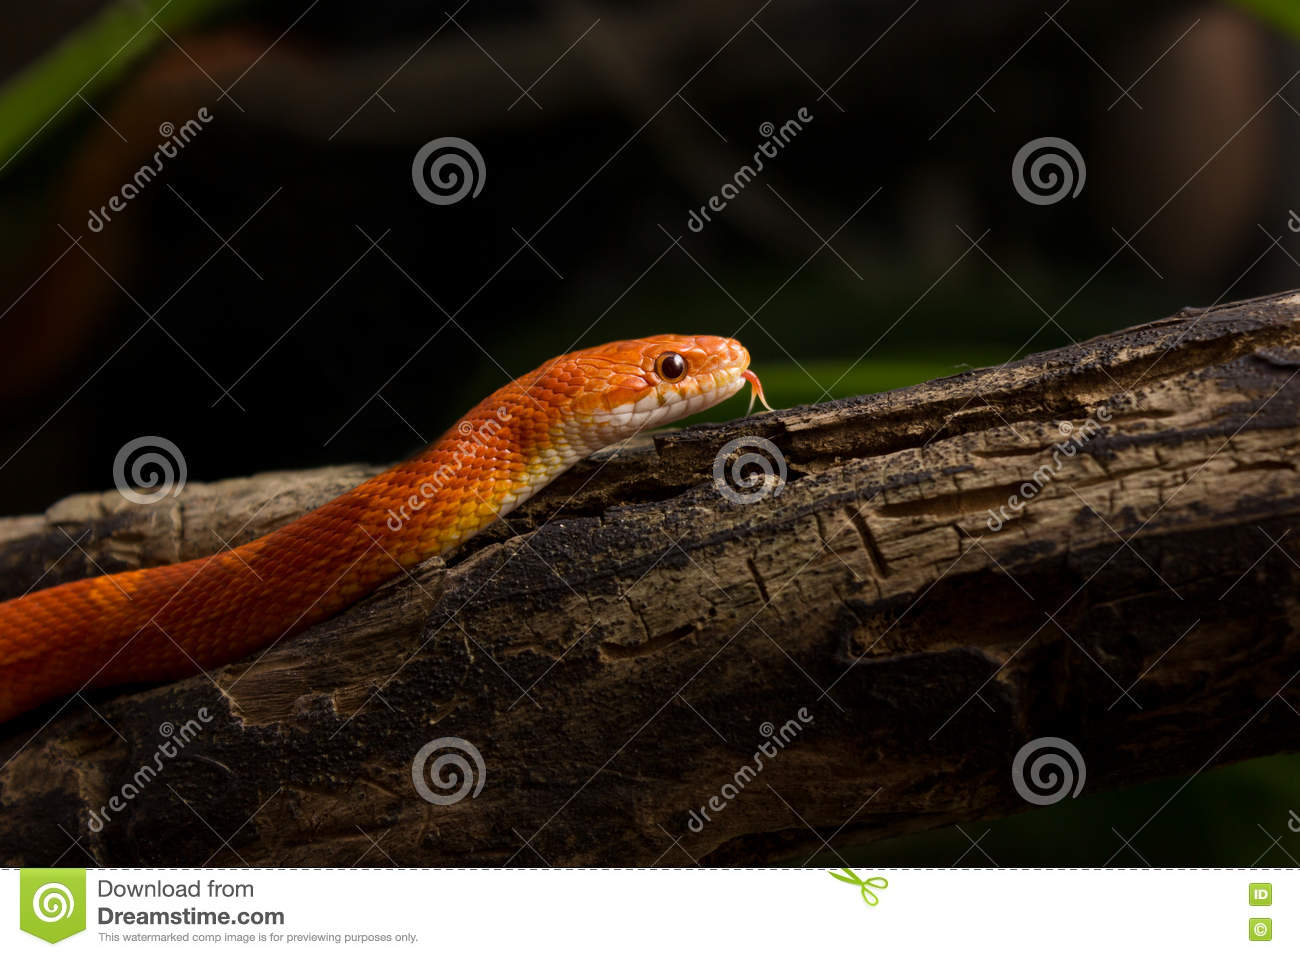 Hypo Bloodred Corn Snake Stock Image Image Of Color 72852941,How To Get Rid Of Flies In Potted Plants